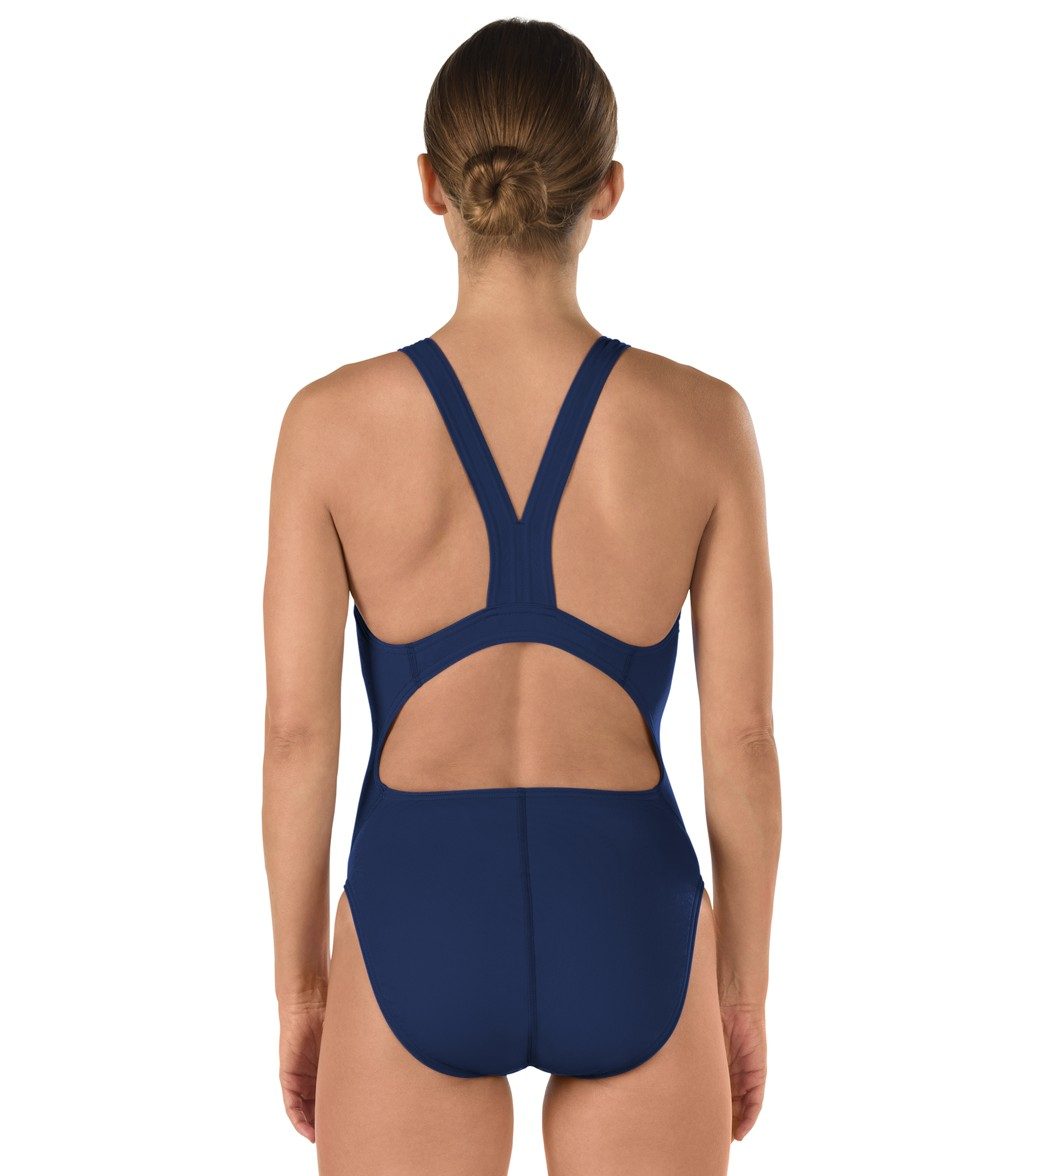 f383858212 Speedo Solid Endurance Super Proback One Piece Swimsuit Adult Swimsuit  Swimsuit